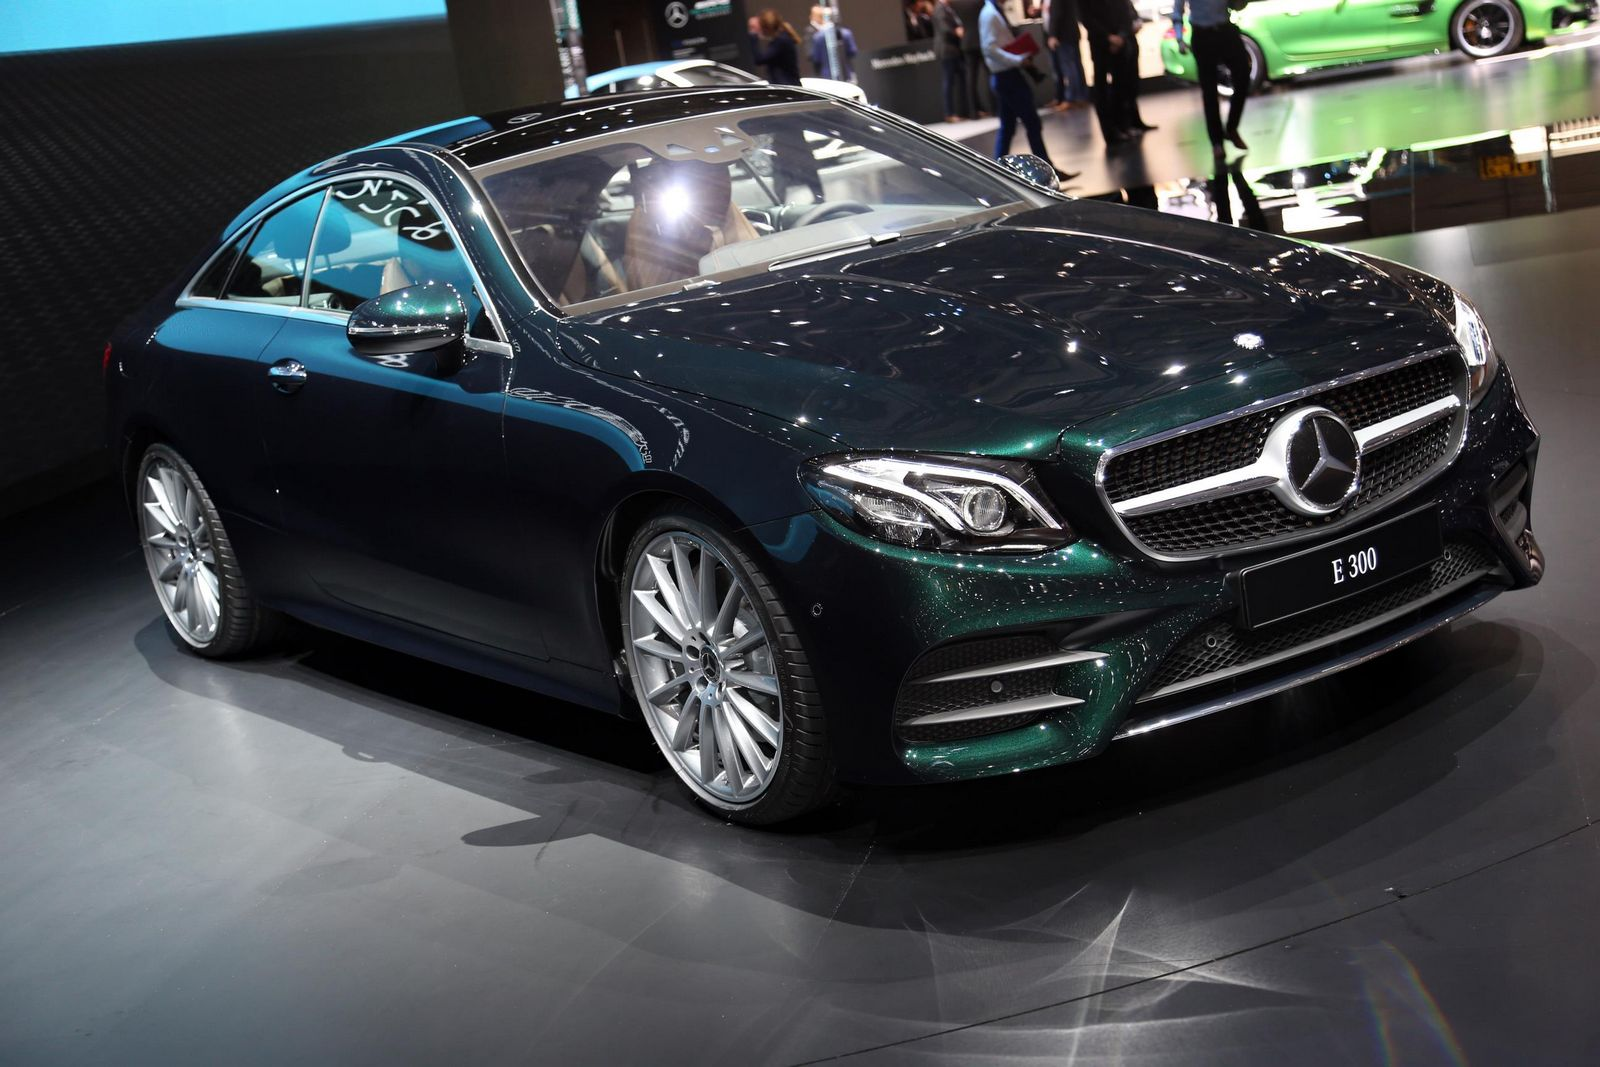 Stylish 2018 Mercedes-Benz E-Class Cabriolet And Coupe ...